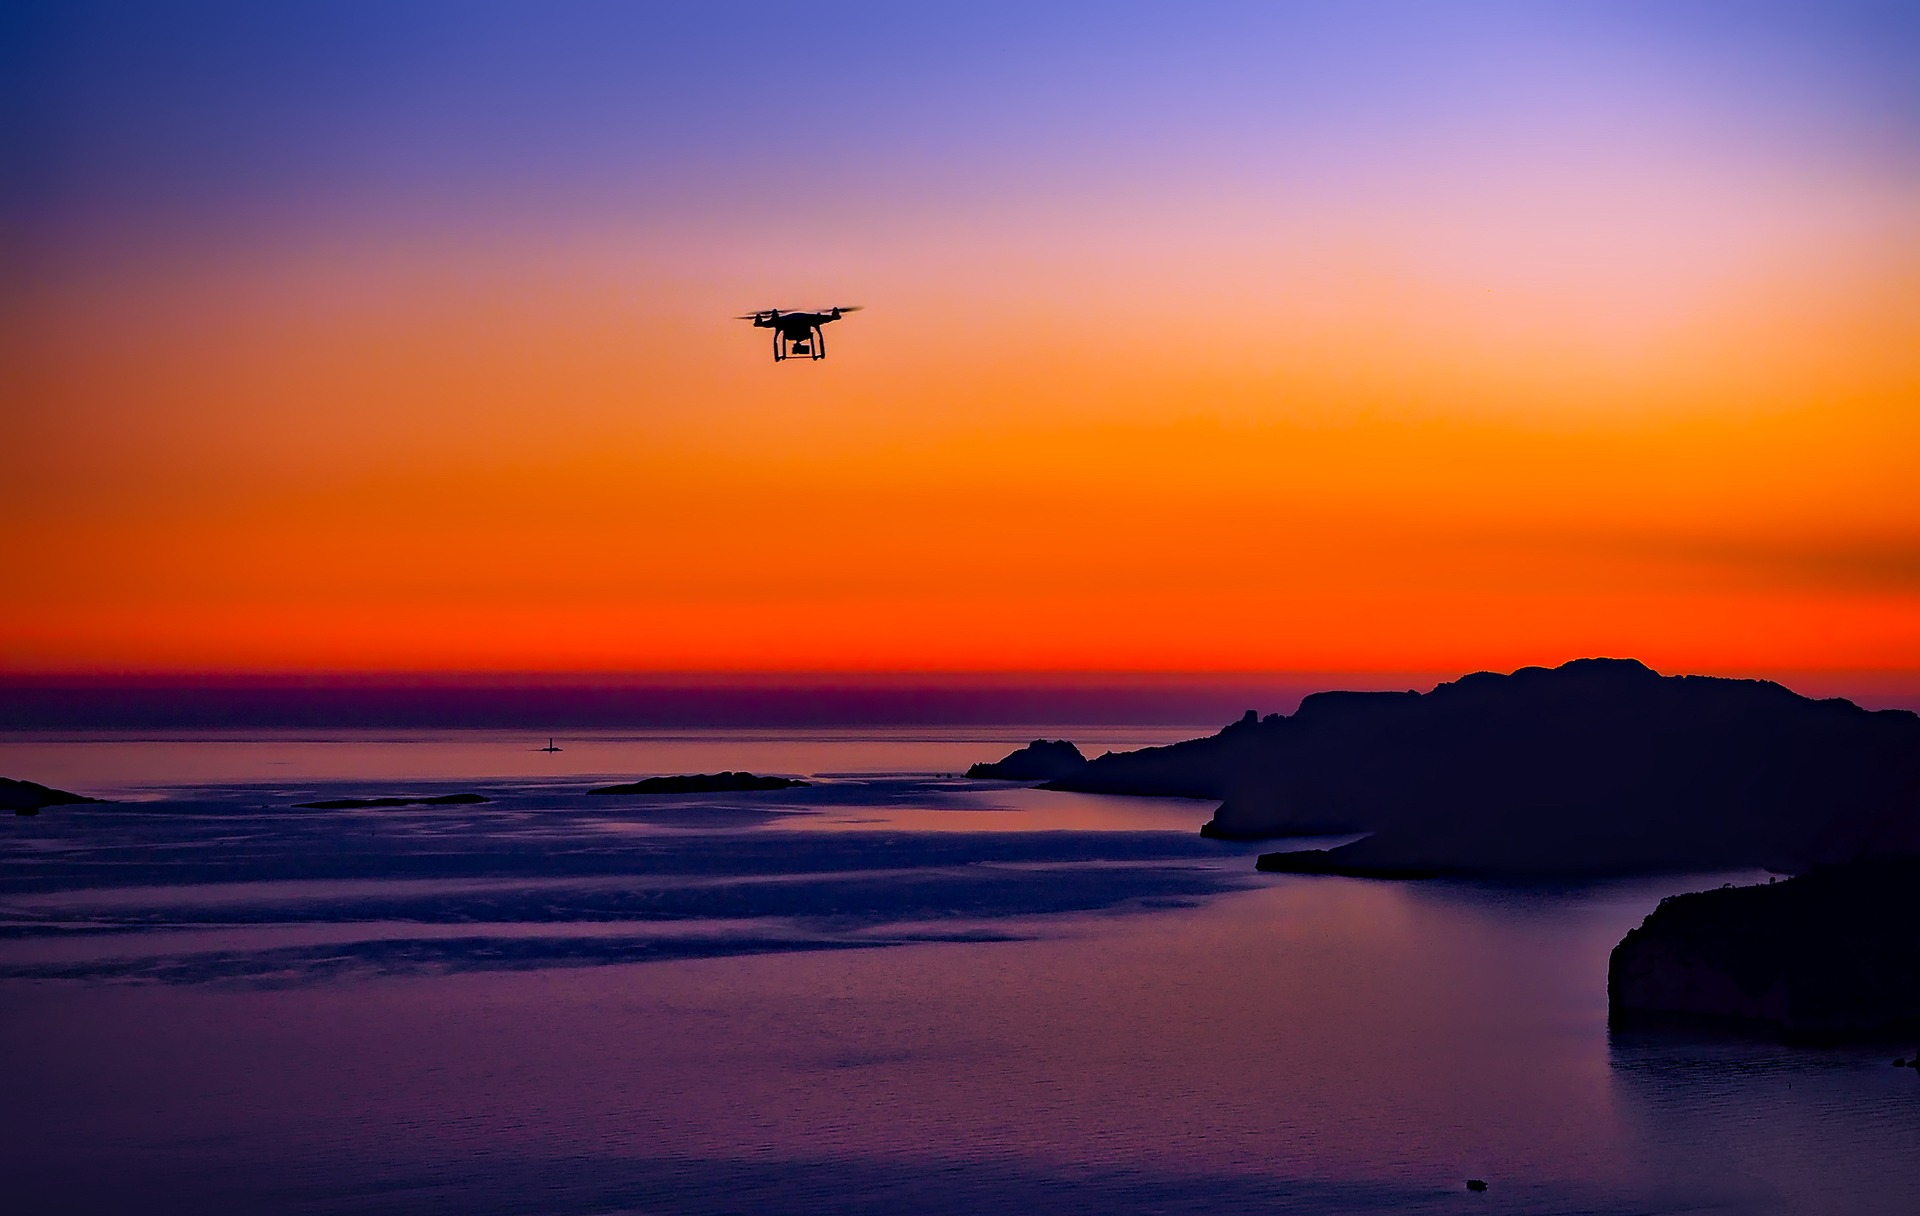 Drone flying above sea in sunset